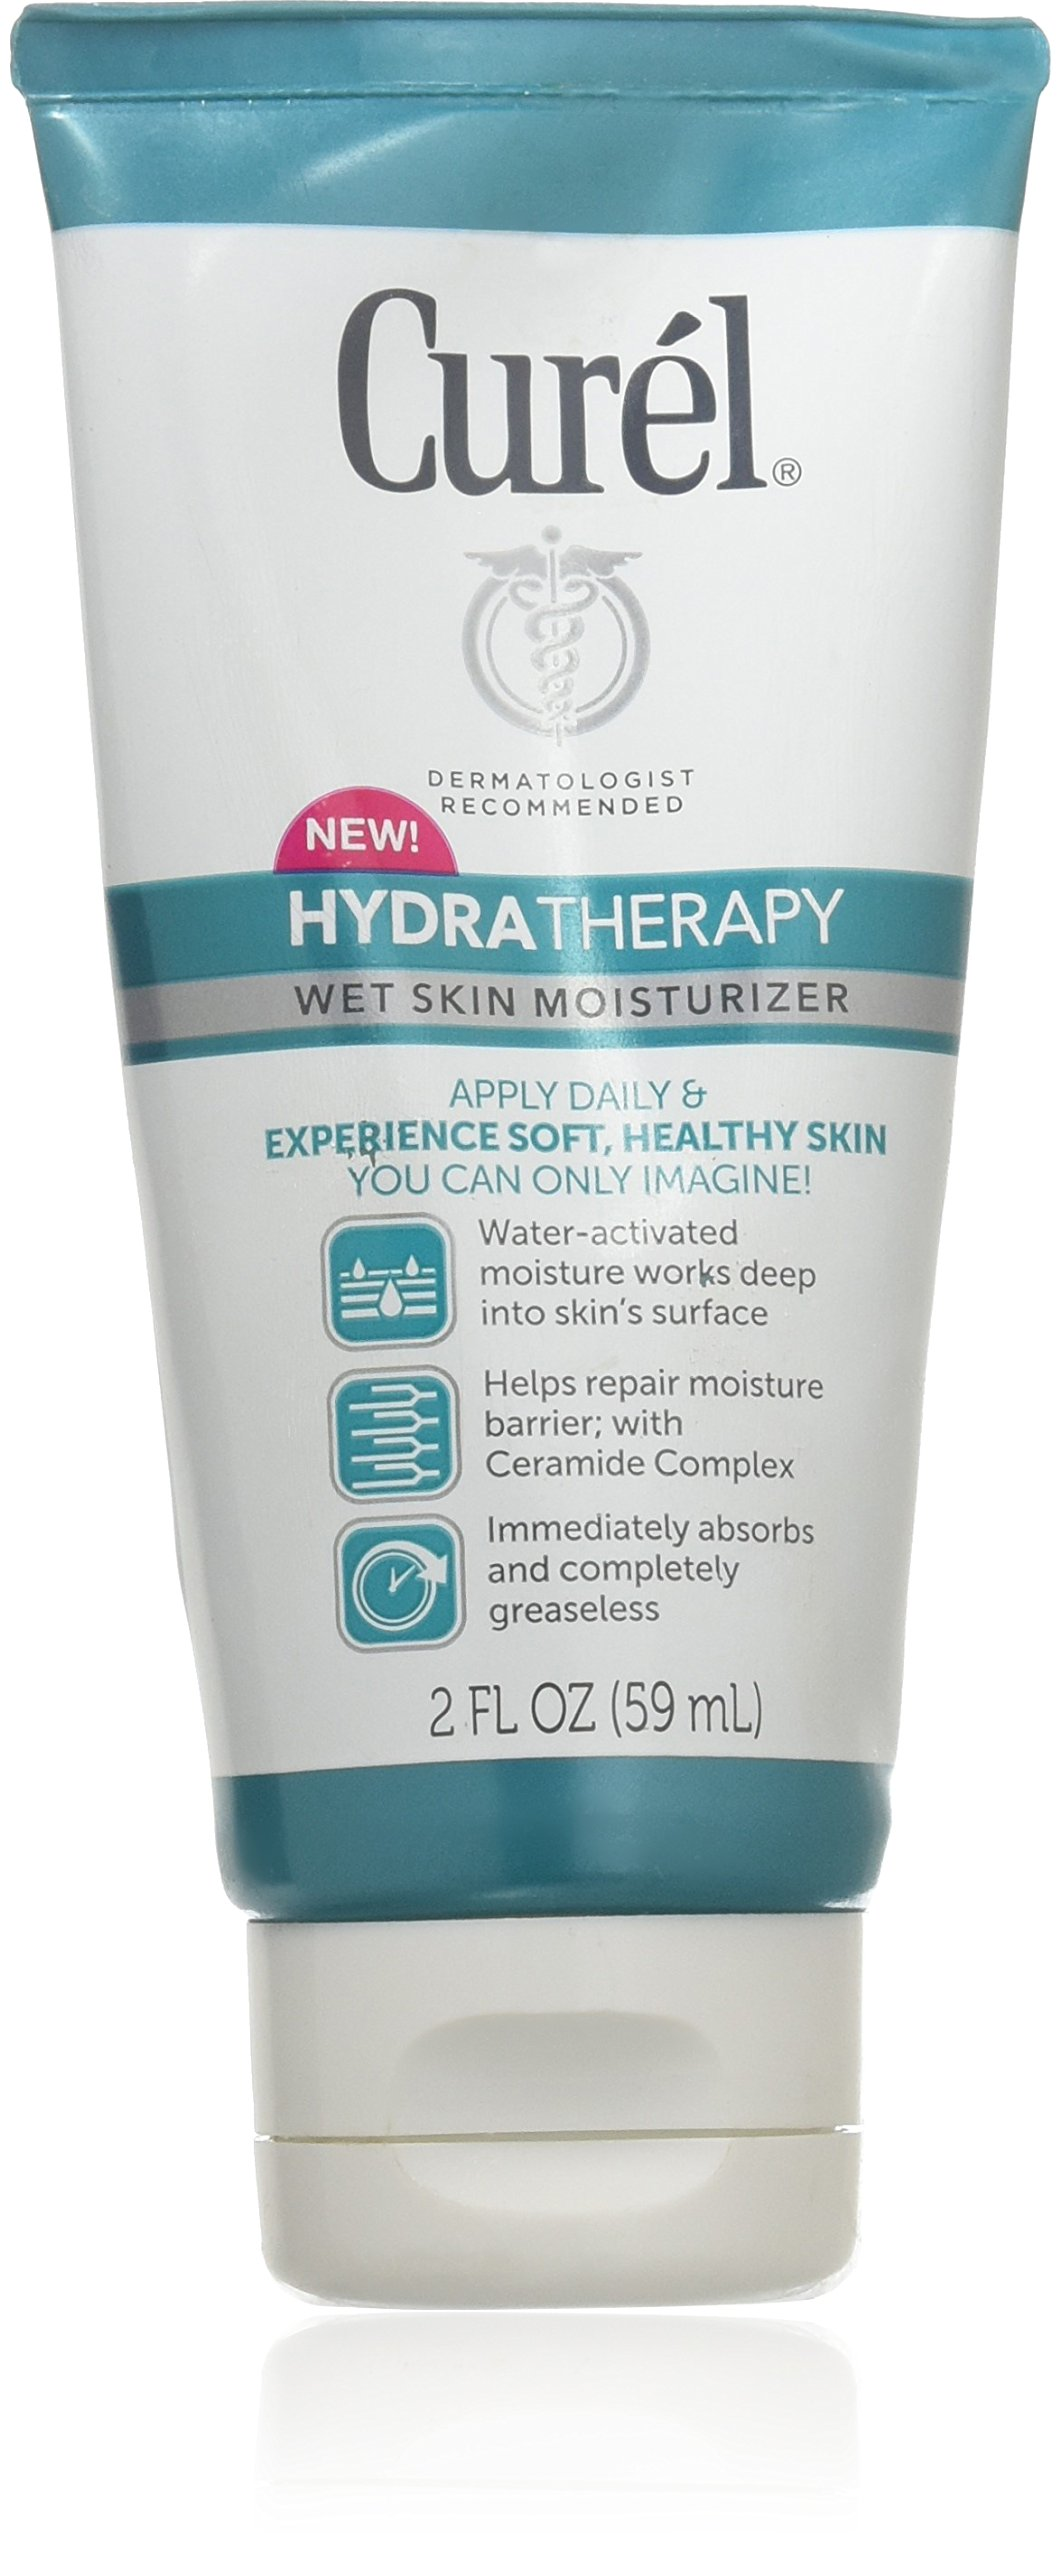 Curel Hydra Therapy Wet Skin Moisturizer! Dermatologist Recommended! Includes One 2 Ounce Tube! For Healthier Looking Skin! by